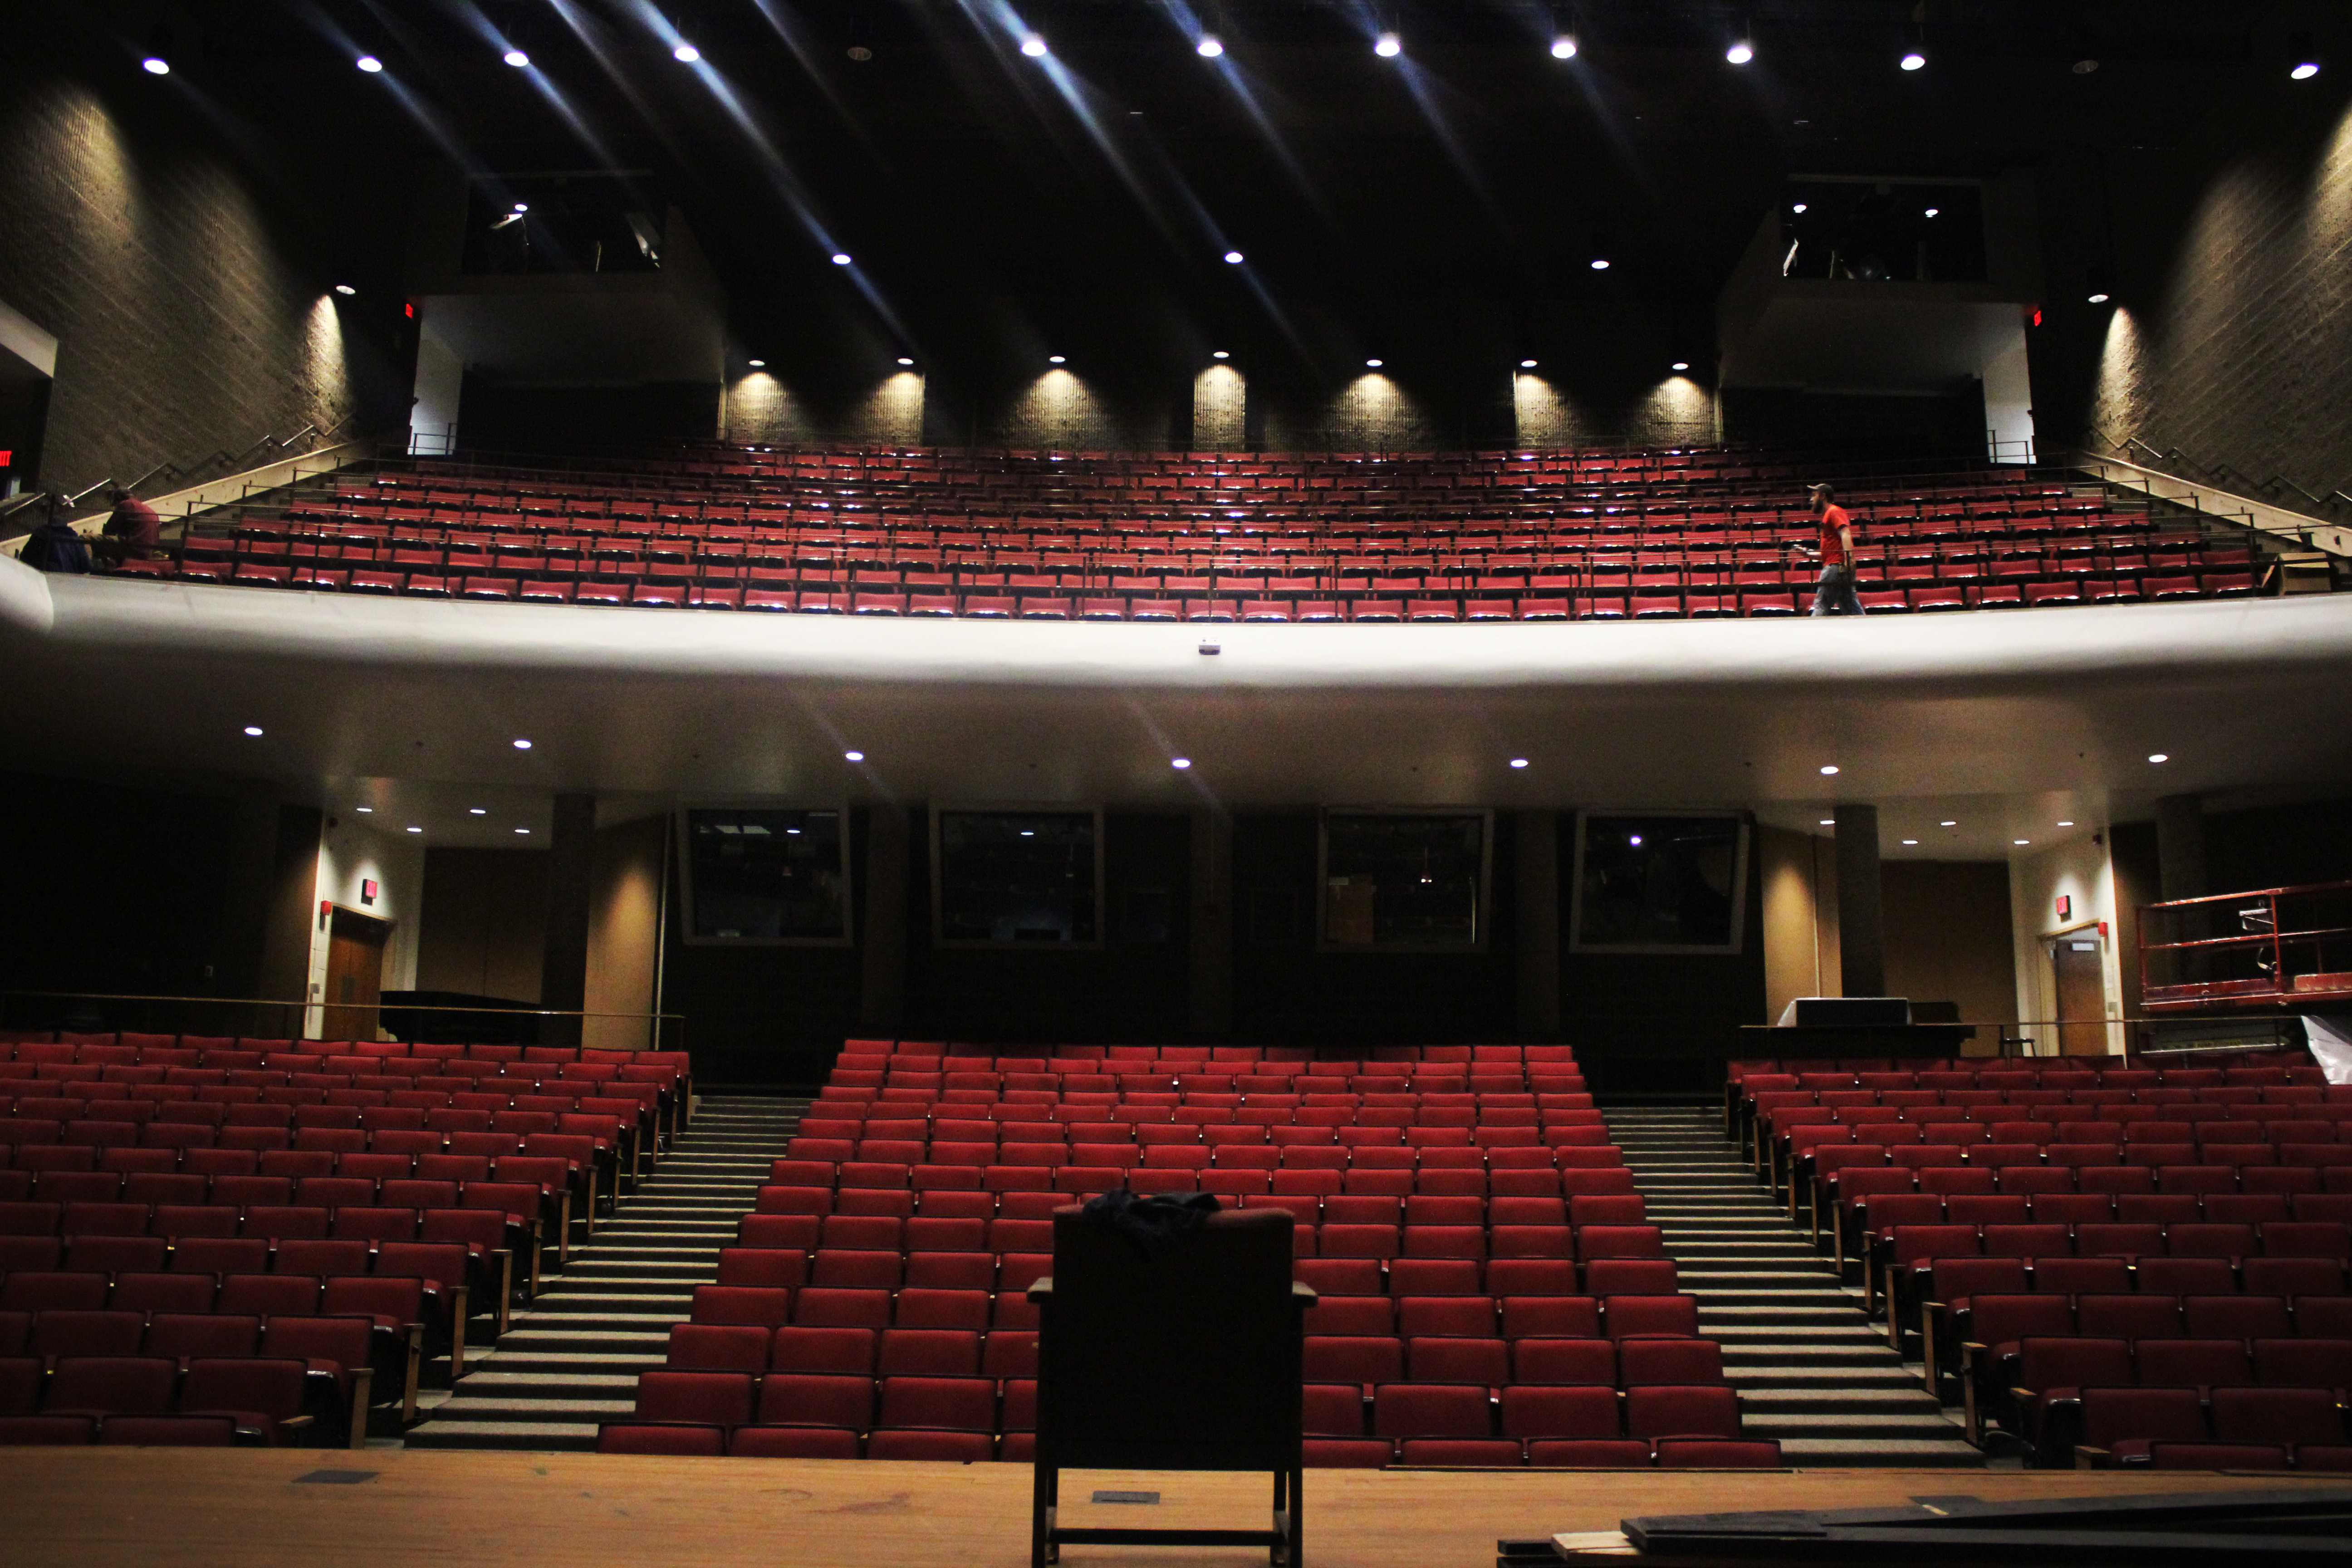 New seating installed to the YPAS auditorium Friday Dec. 2, 2016. These new seats replaced the previous seating that Mr. Krady referred to as